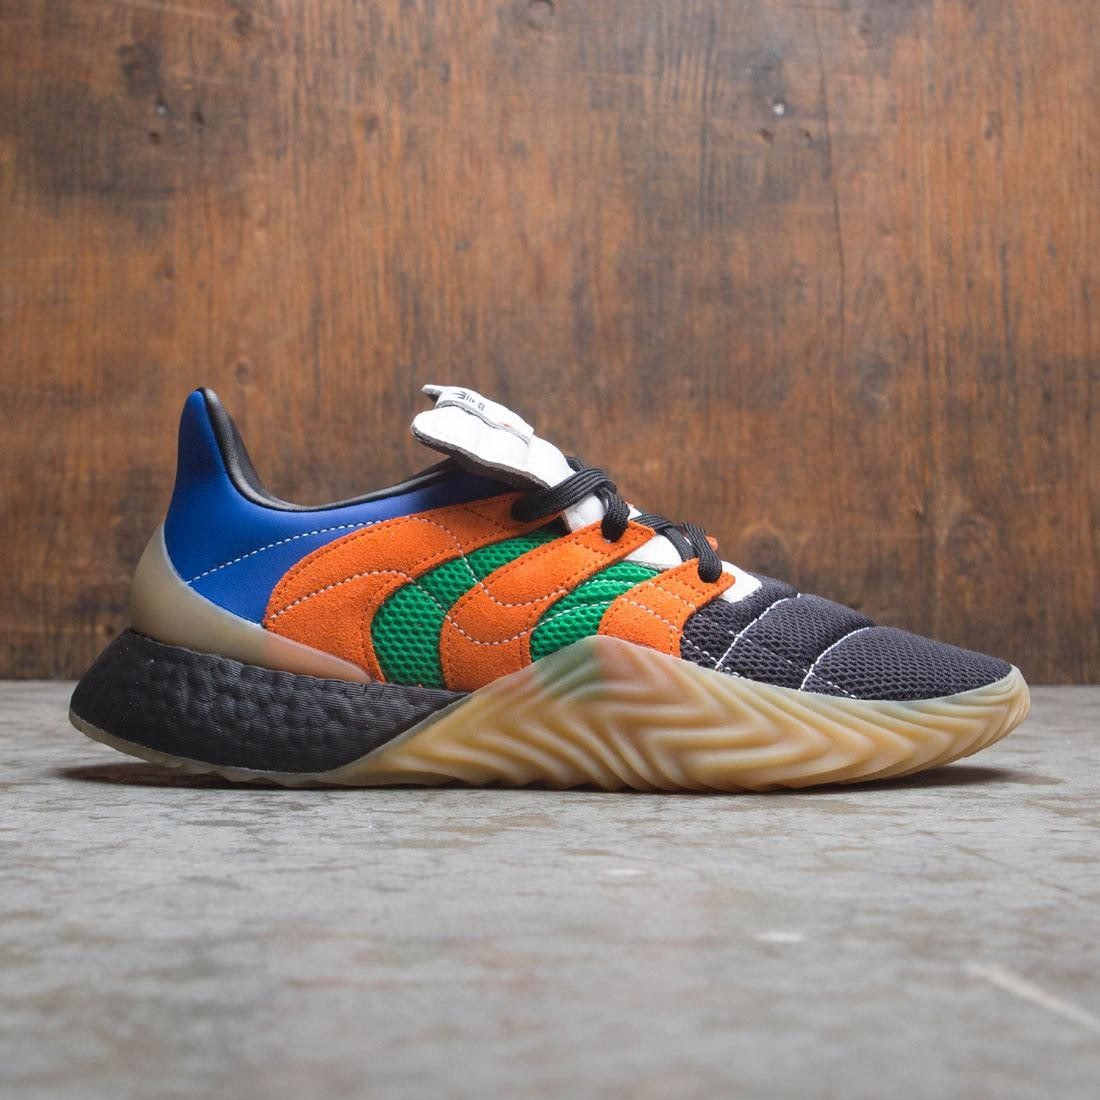 Image result for adidas Consortium x Sivasdescalzo Sobakov Boost